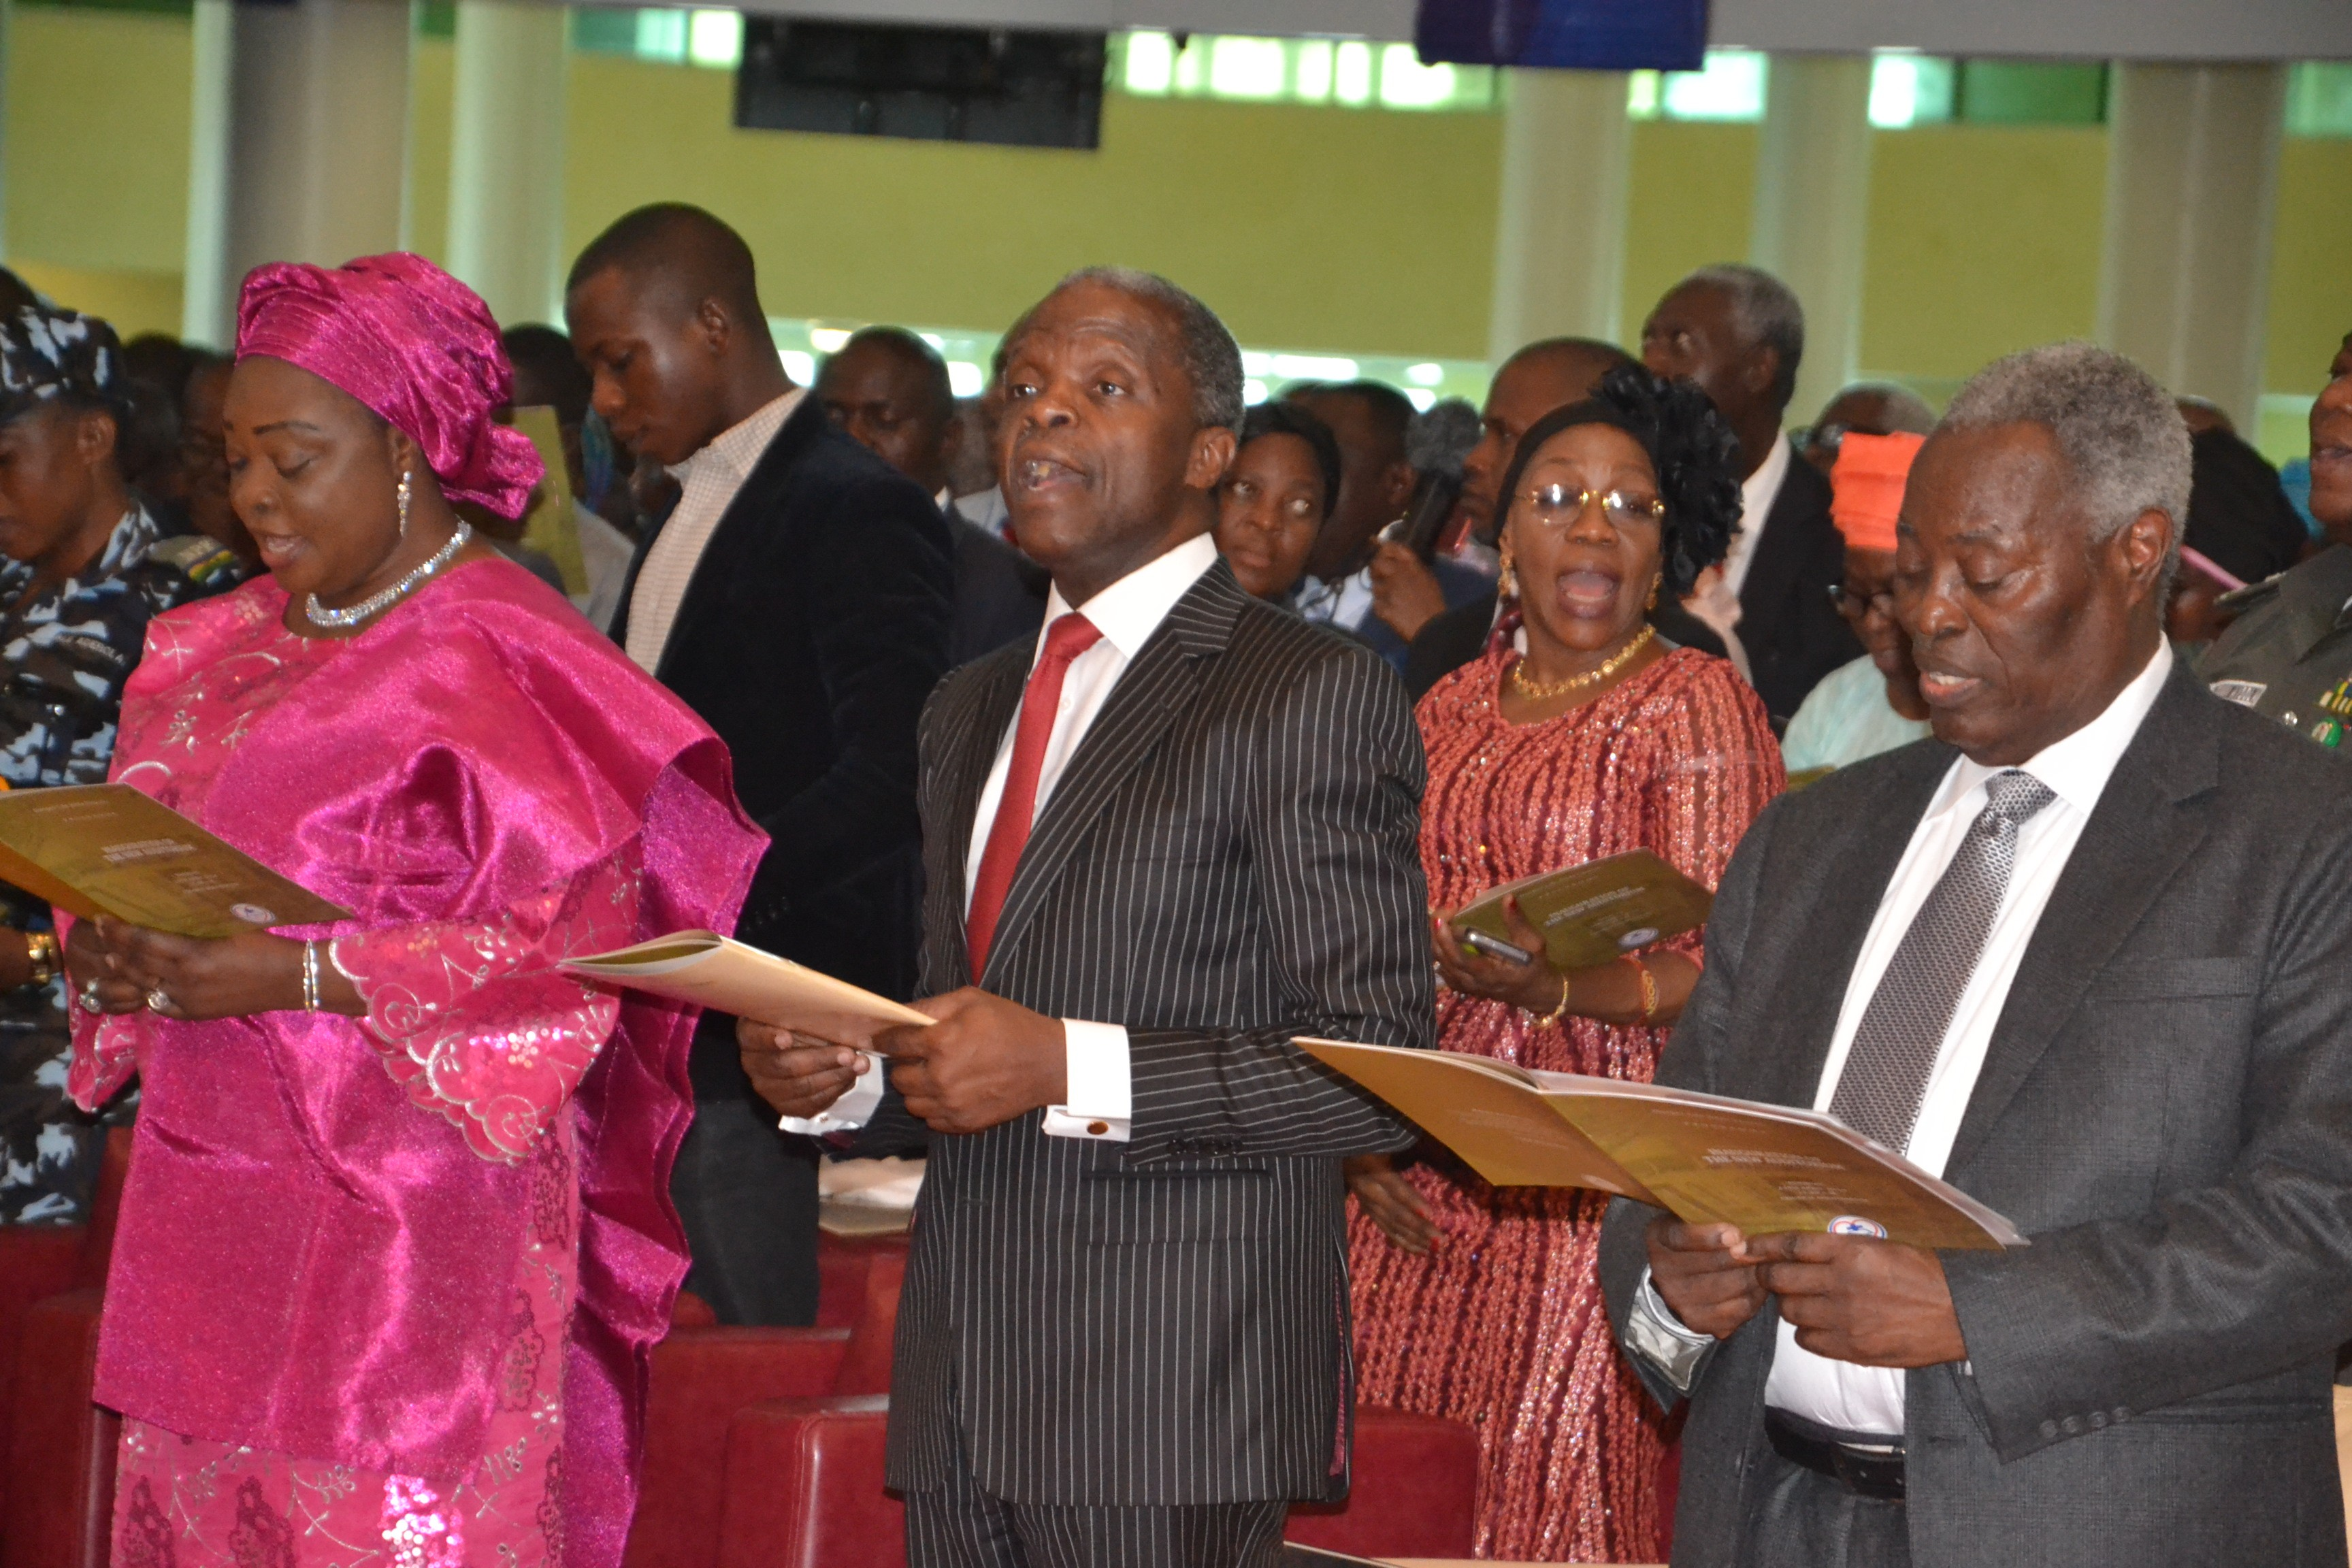 Vice President Osinbajo Commissions new Deeper Life Church, speaks against persecution of Christians